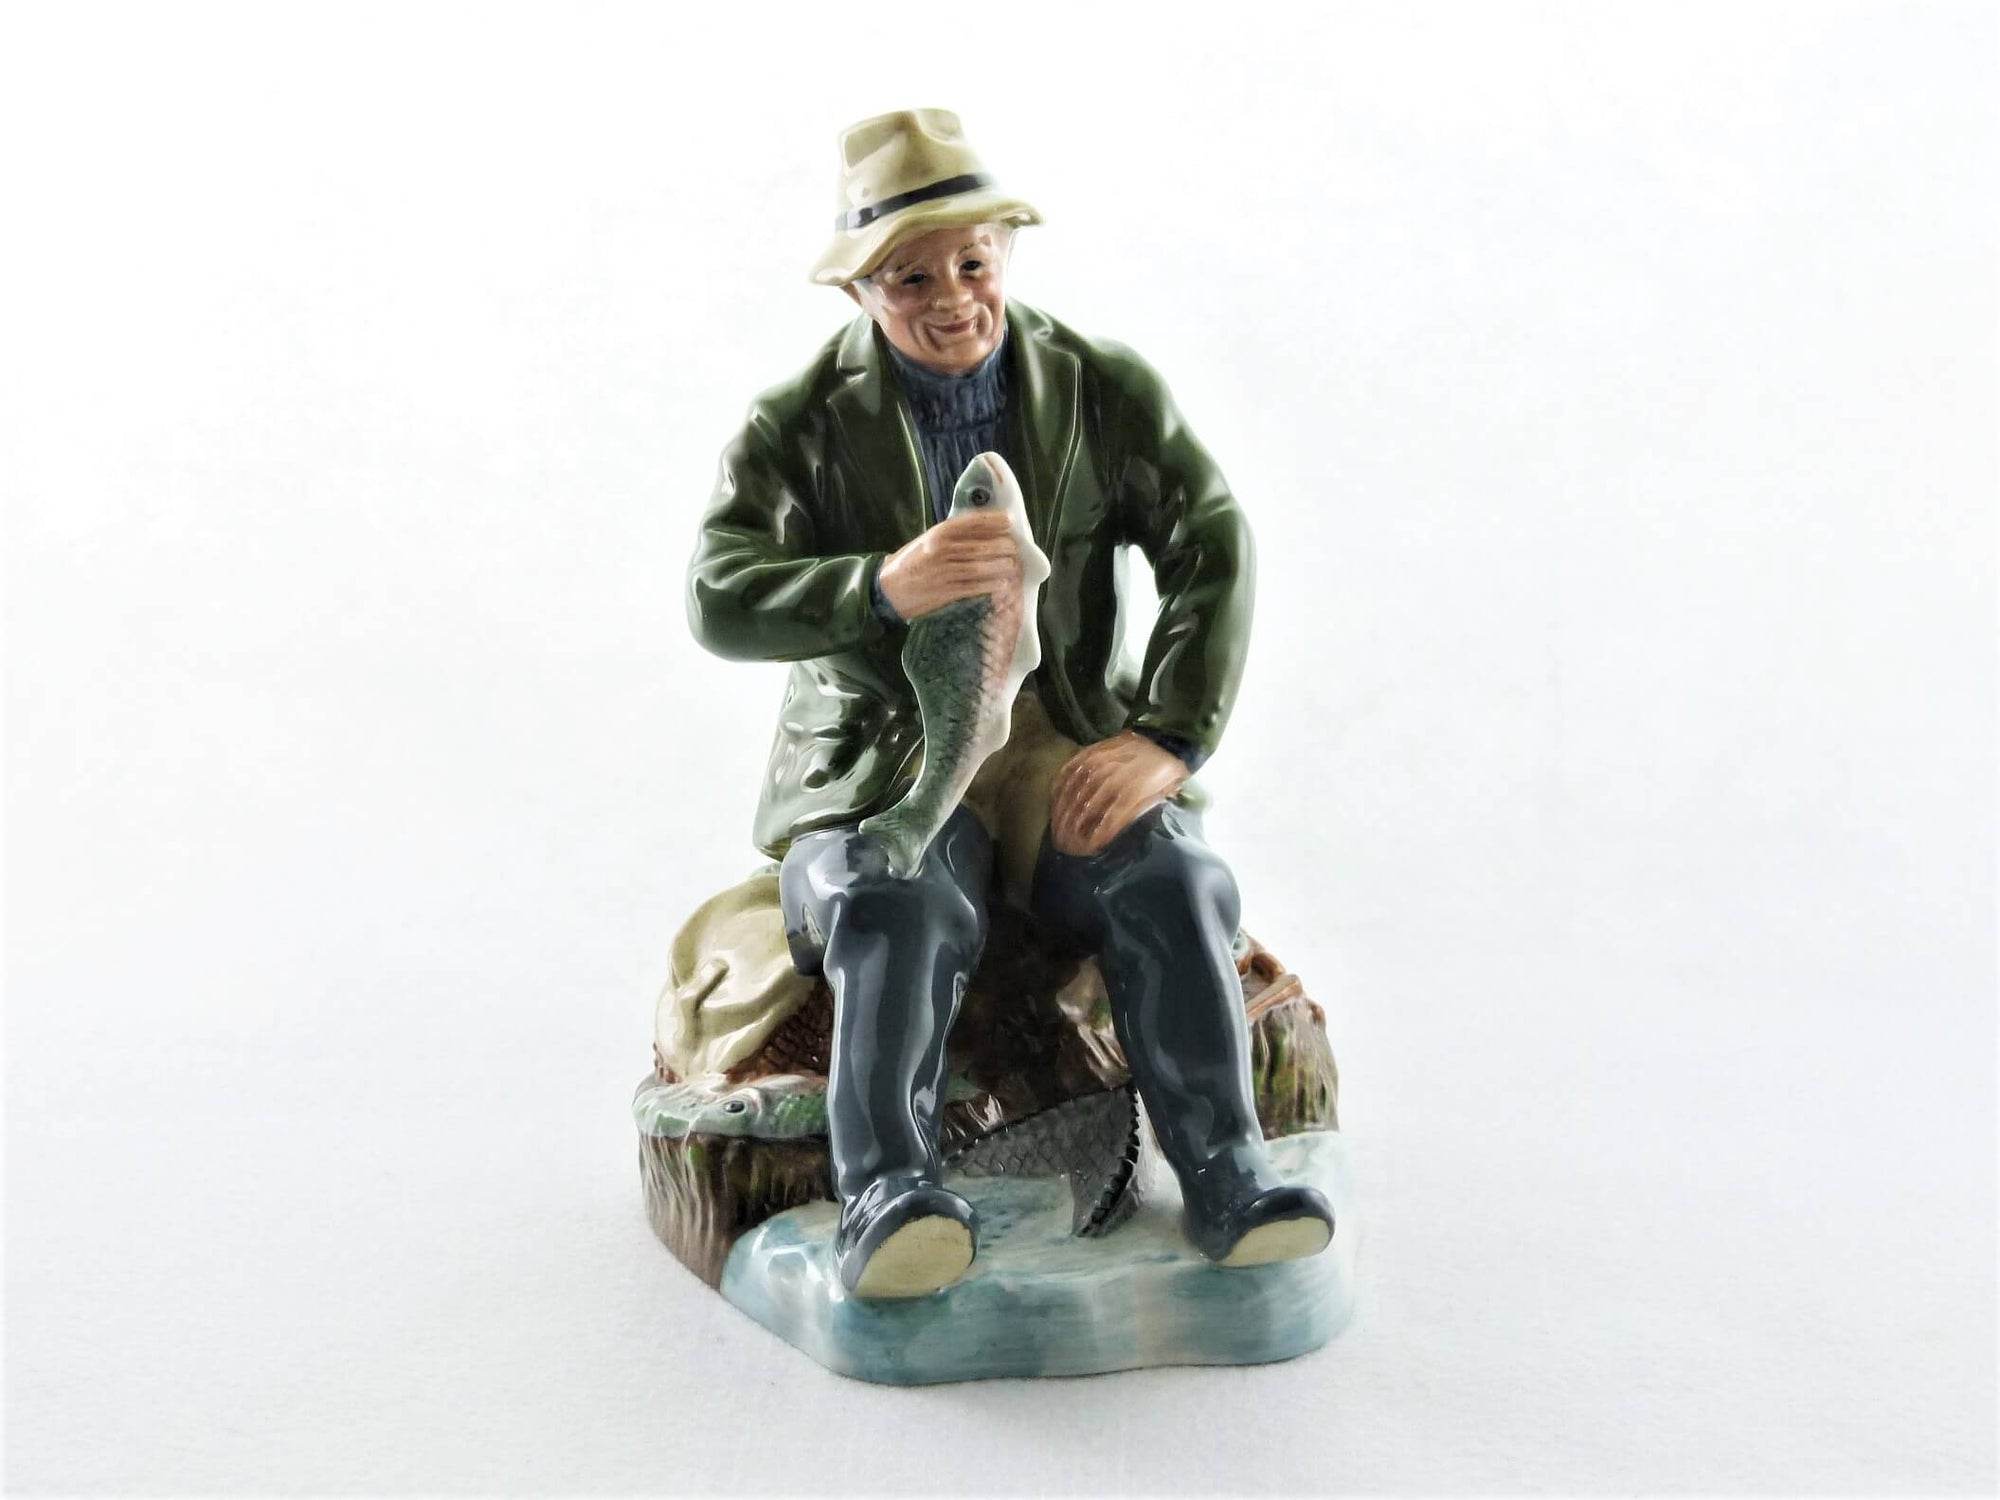 Royal Doulton Figurine, An Appealing Fisherman, HN2258, 'A Good Catch '